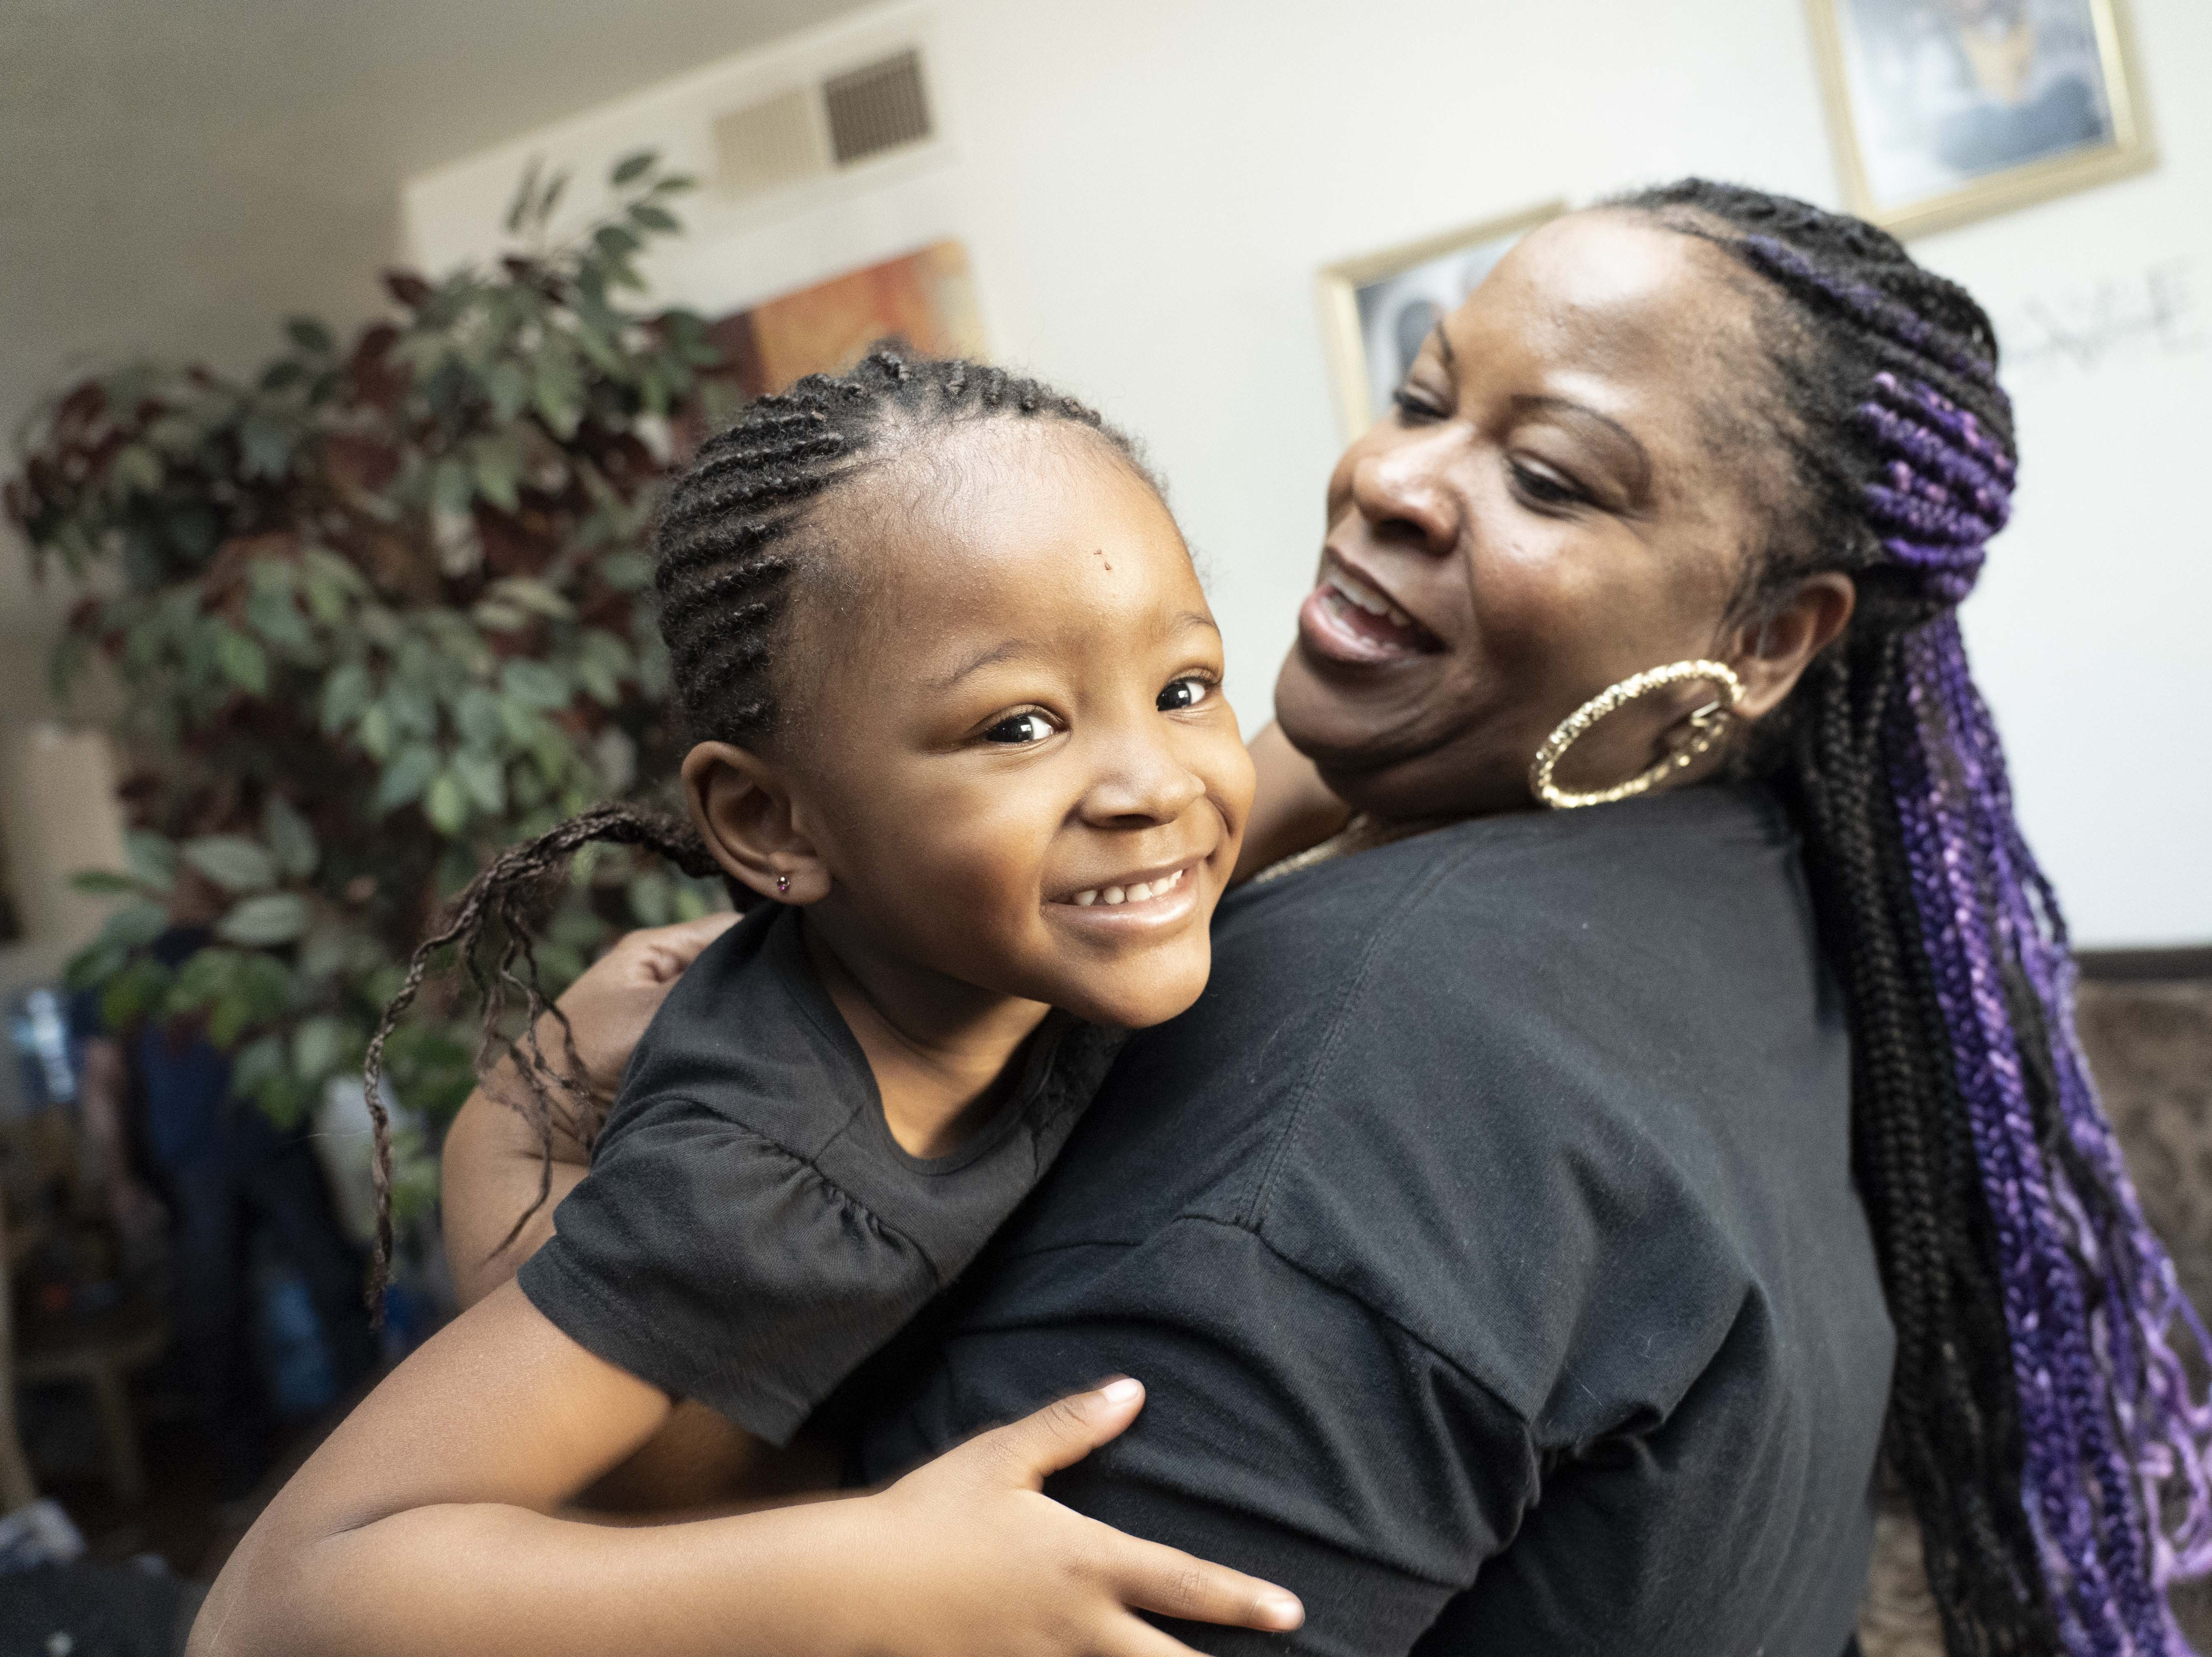 Dana Burns (right) hugs Nylayia Richards, 3. Dana Burns and the Permanent Voice Foundation, a non-profit she started n 2018 with her partner,  Jamal Carter, brought Nylayia's family, who were grieving a recent death, Christmas presents and a Christmas meal.